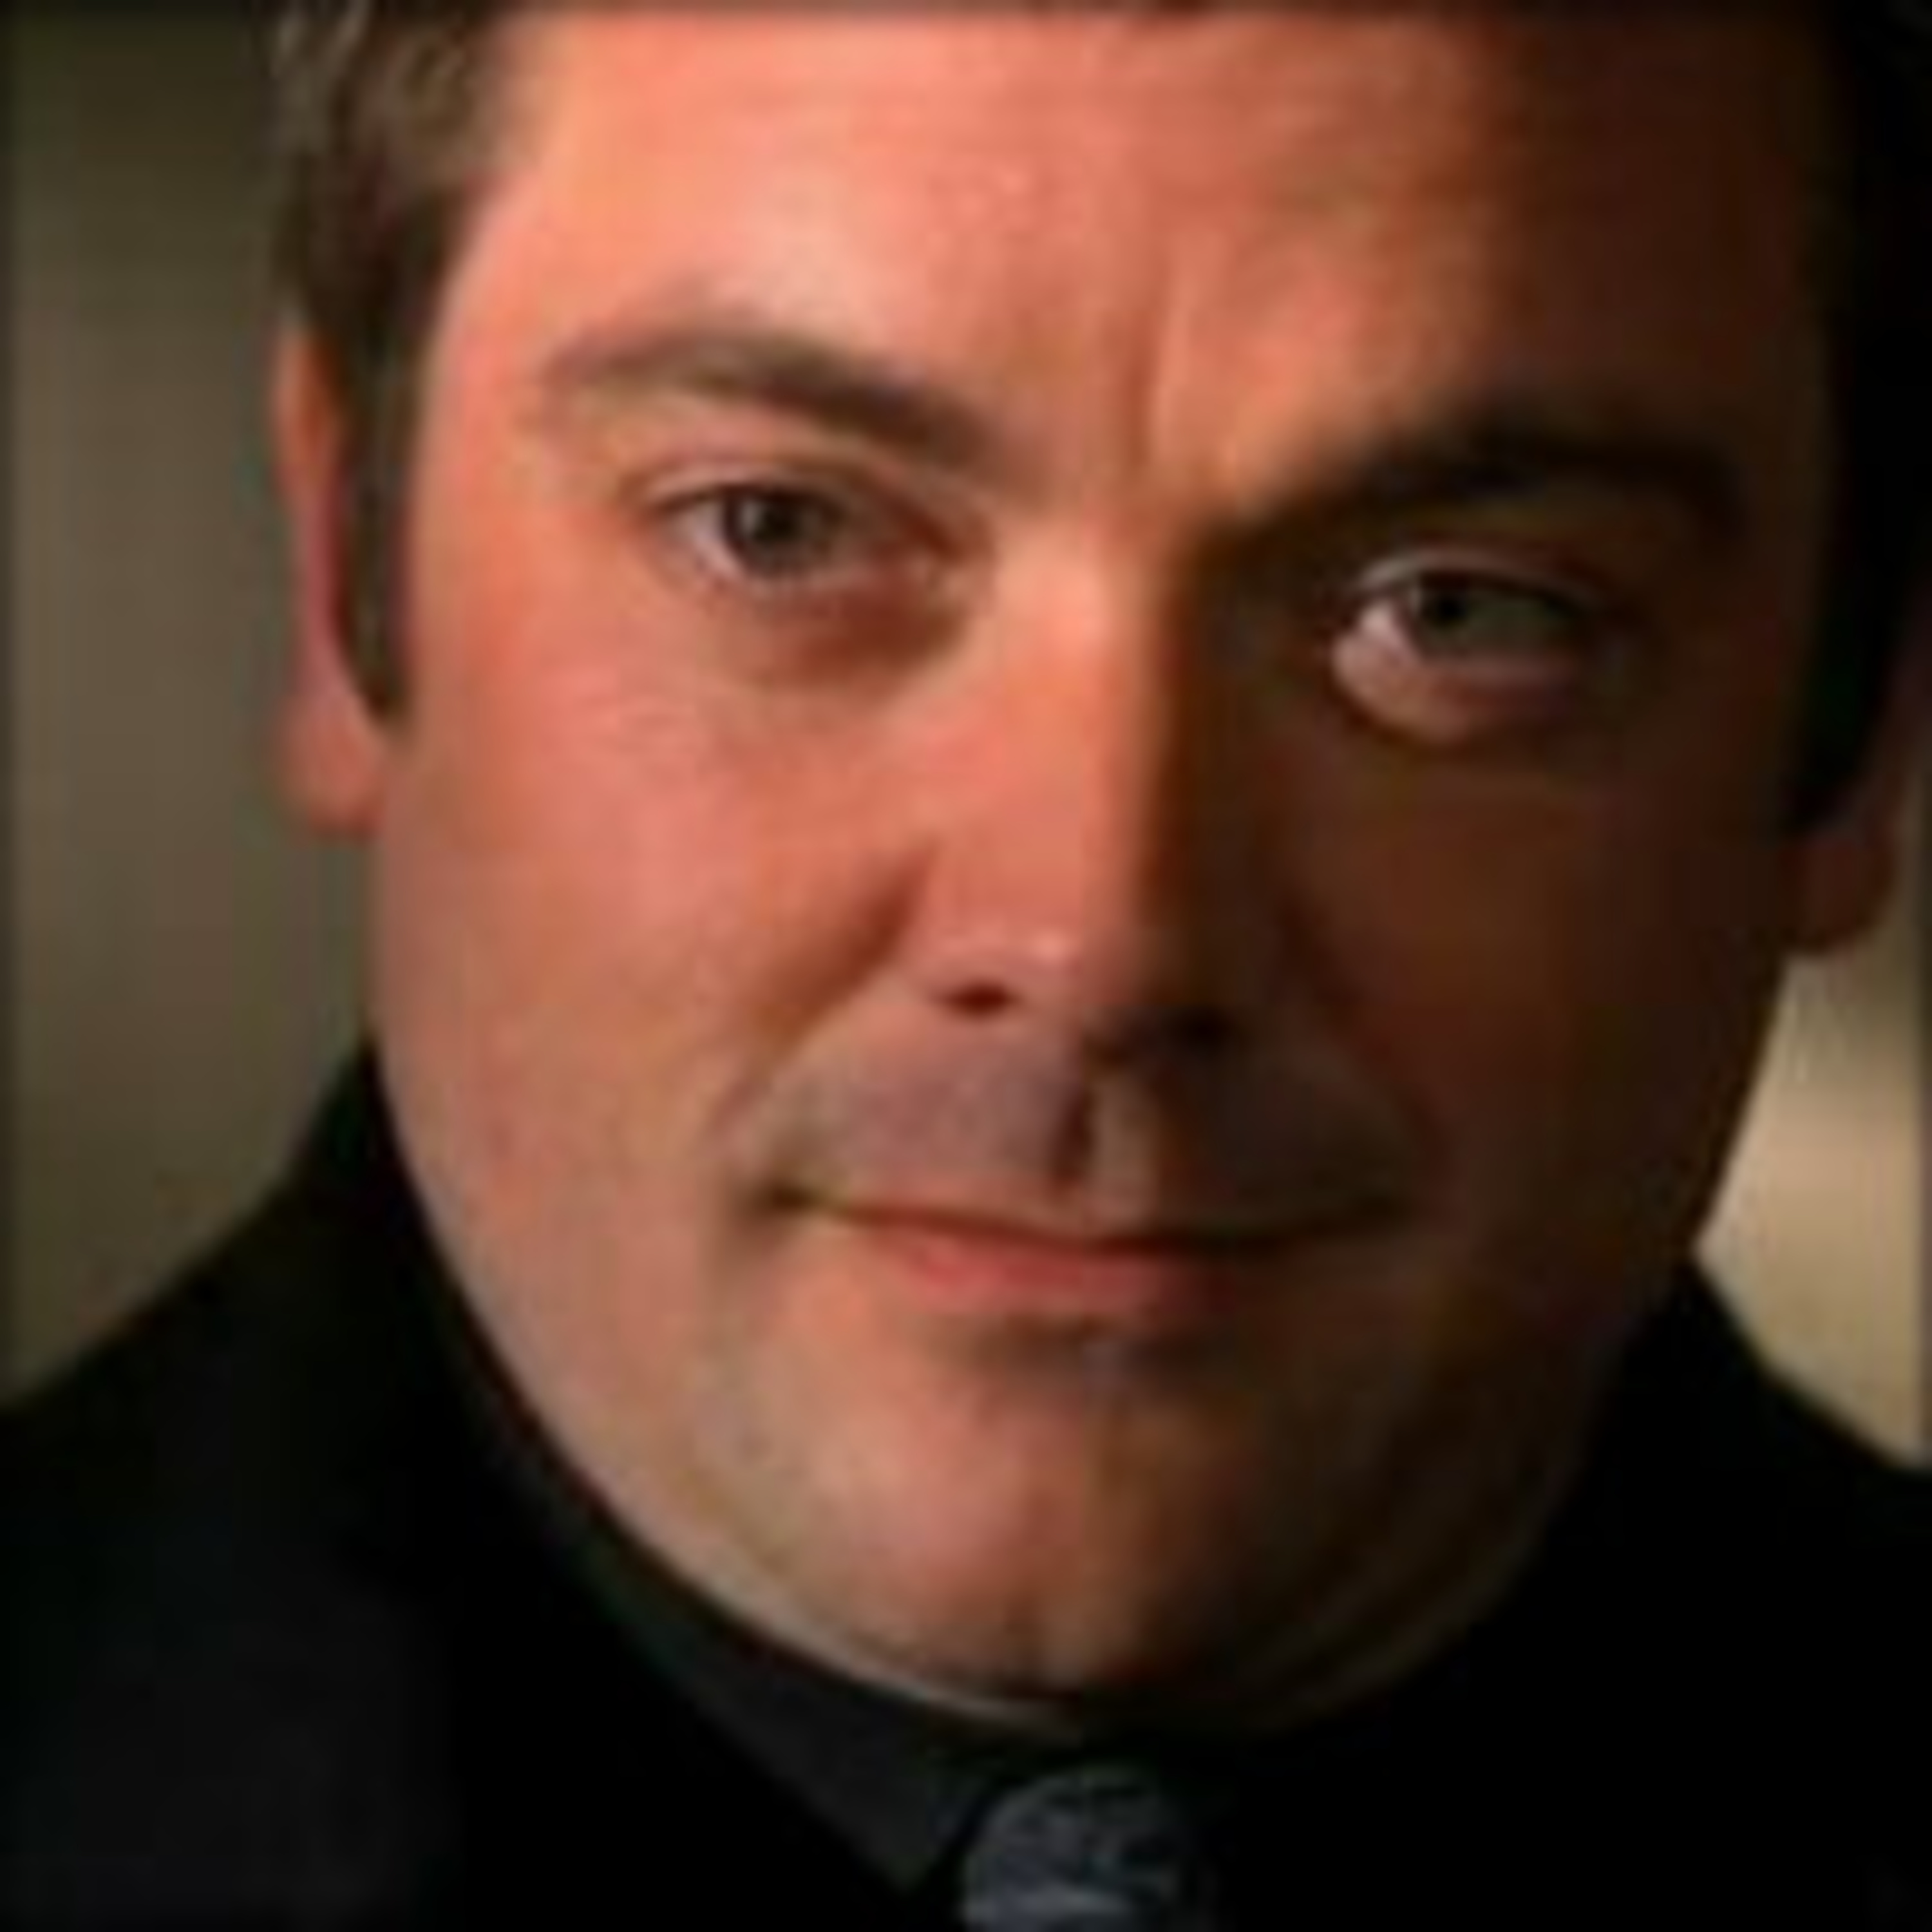 Supernatural - 666 Crowley - Fanfiction Reading Chapters 1 - 4